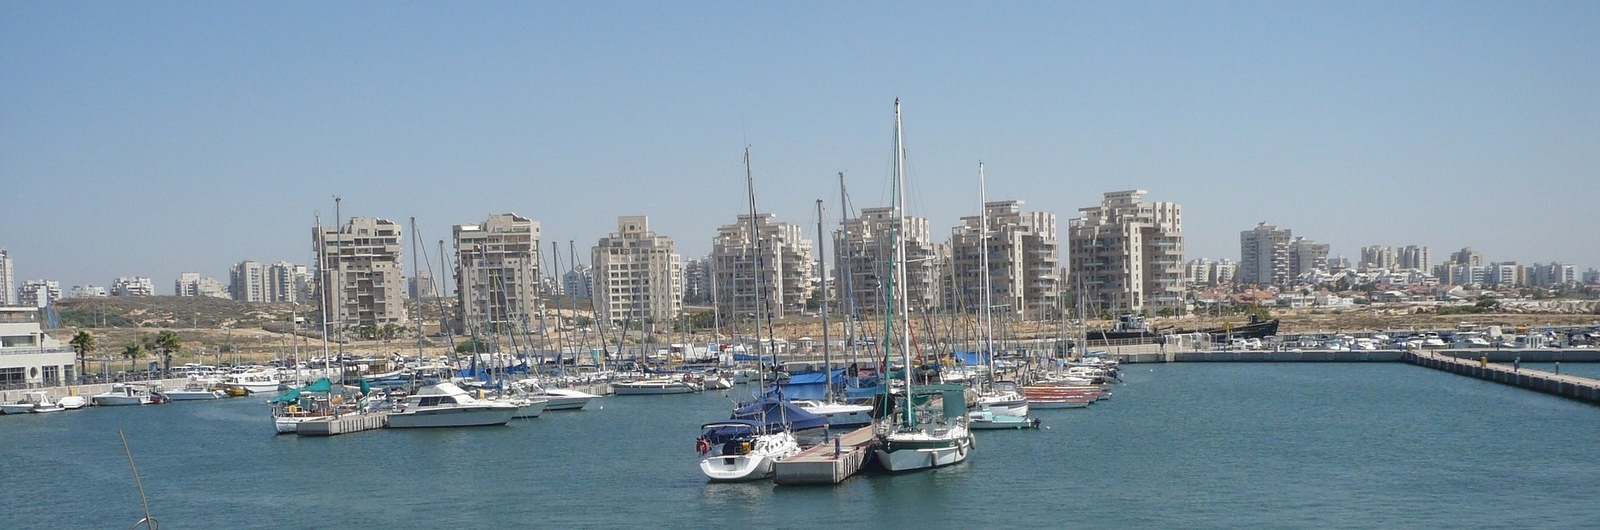 ashdod city header